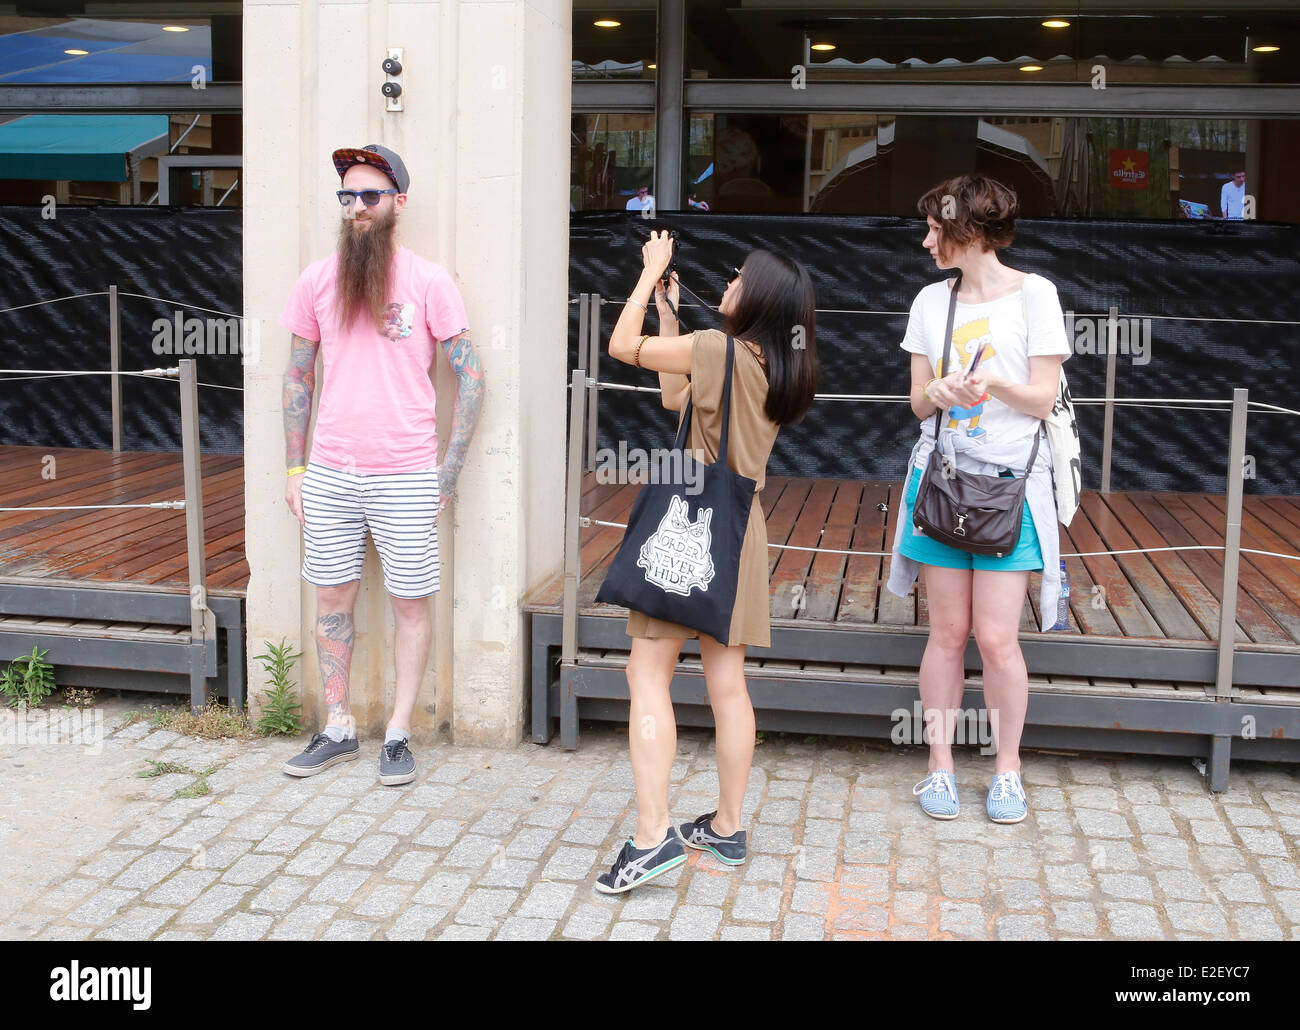 A man is pictured with with mobile phone during Sonar advanced music festival in Barcelona, Spain - Stock Image